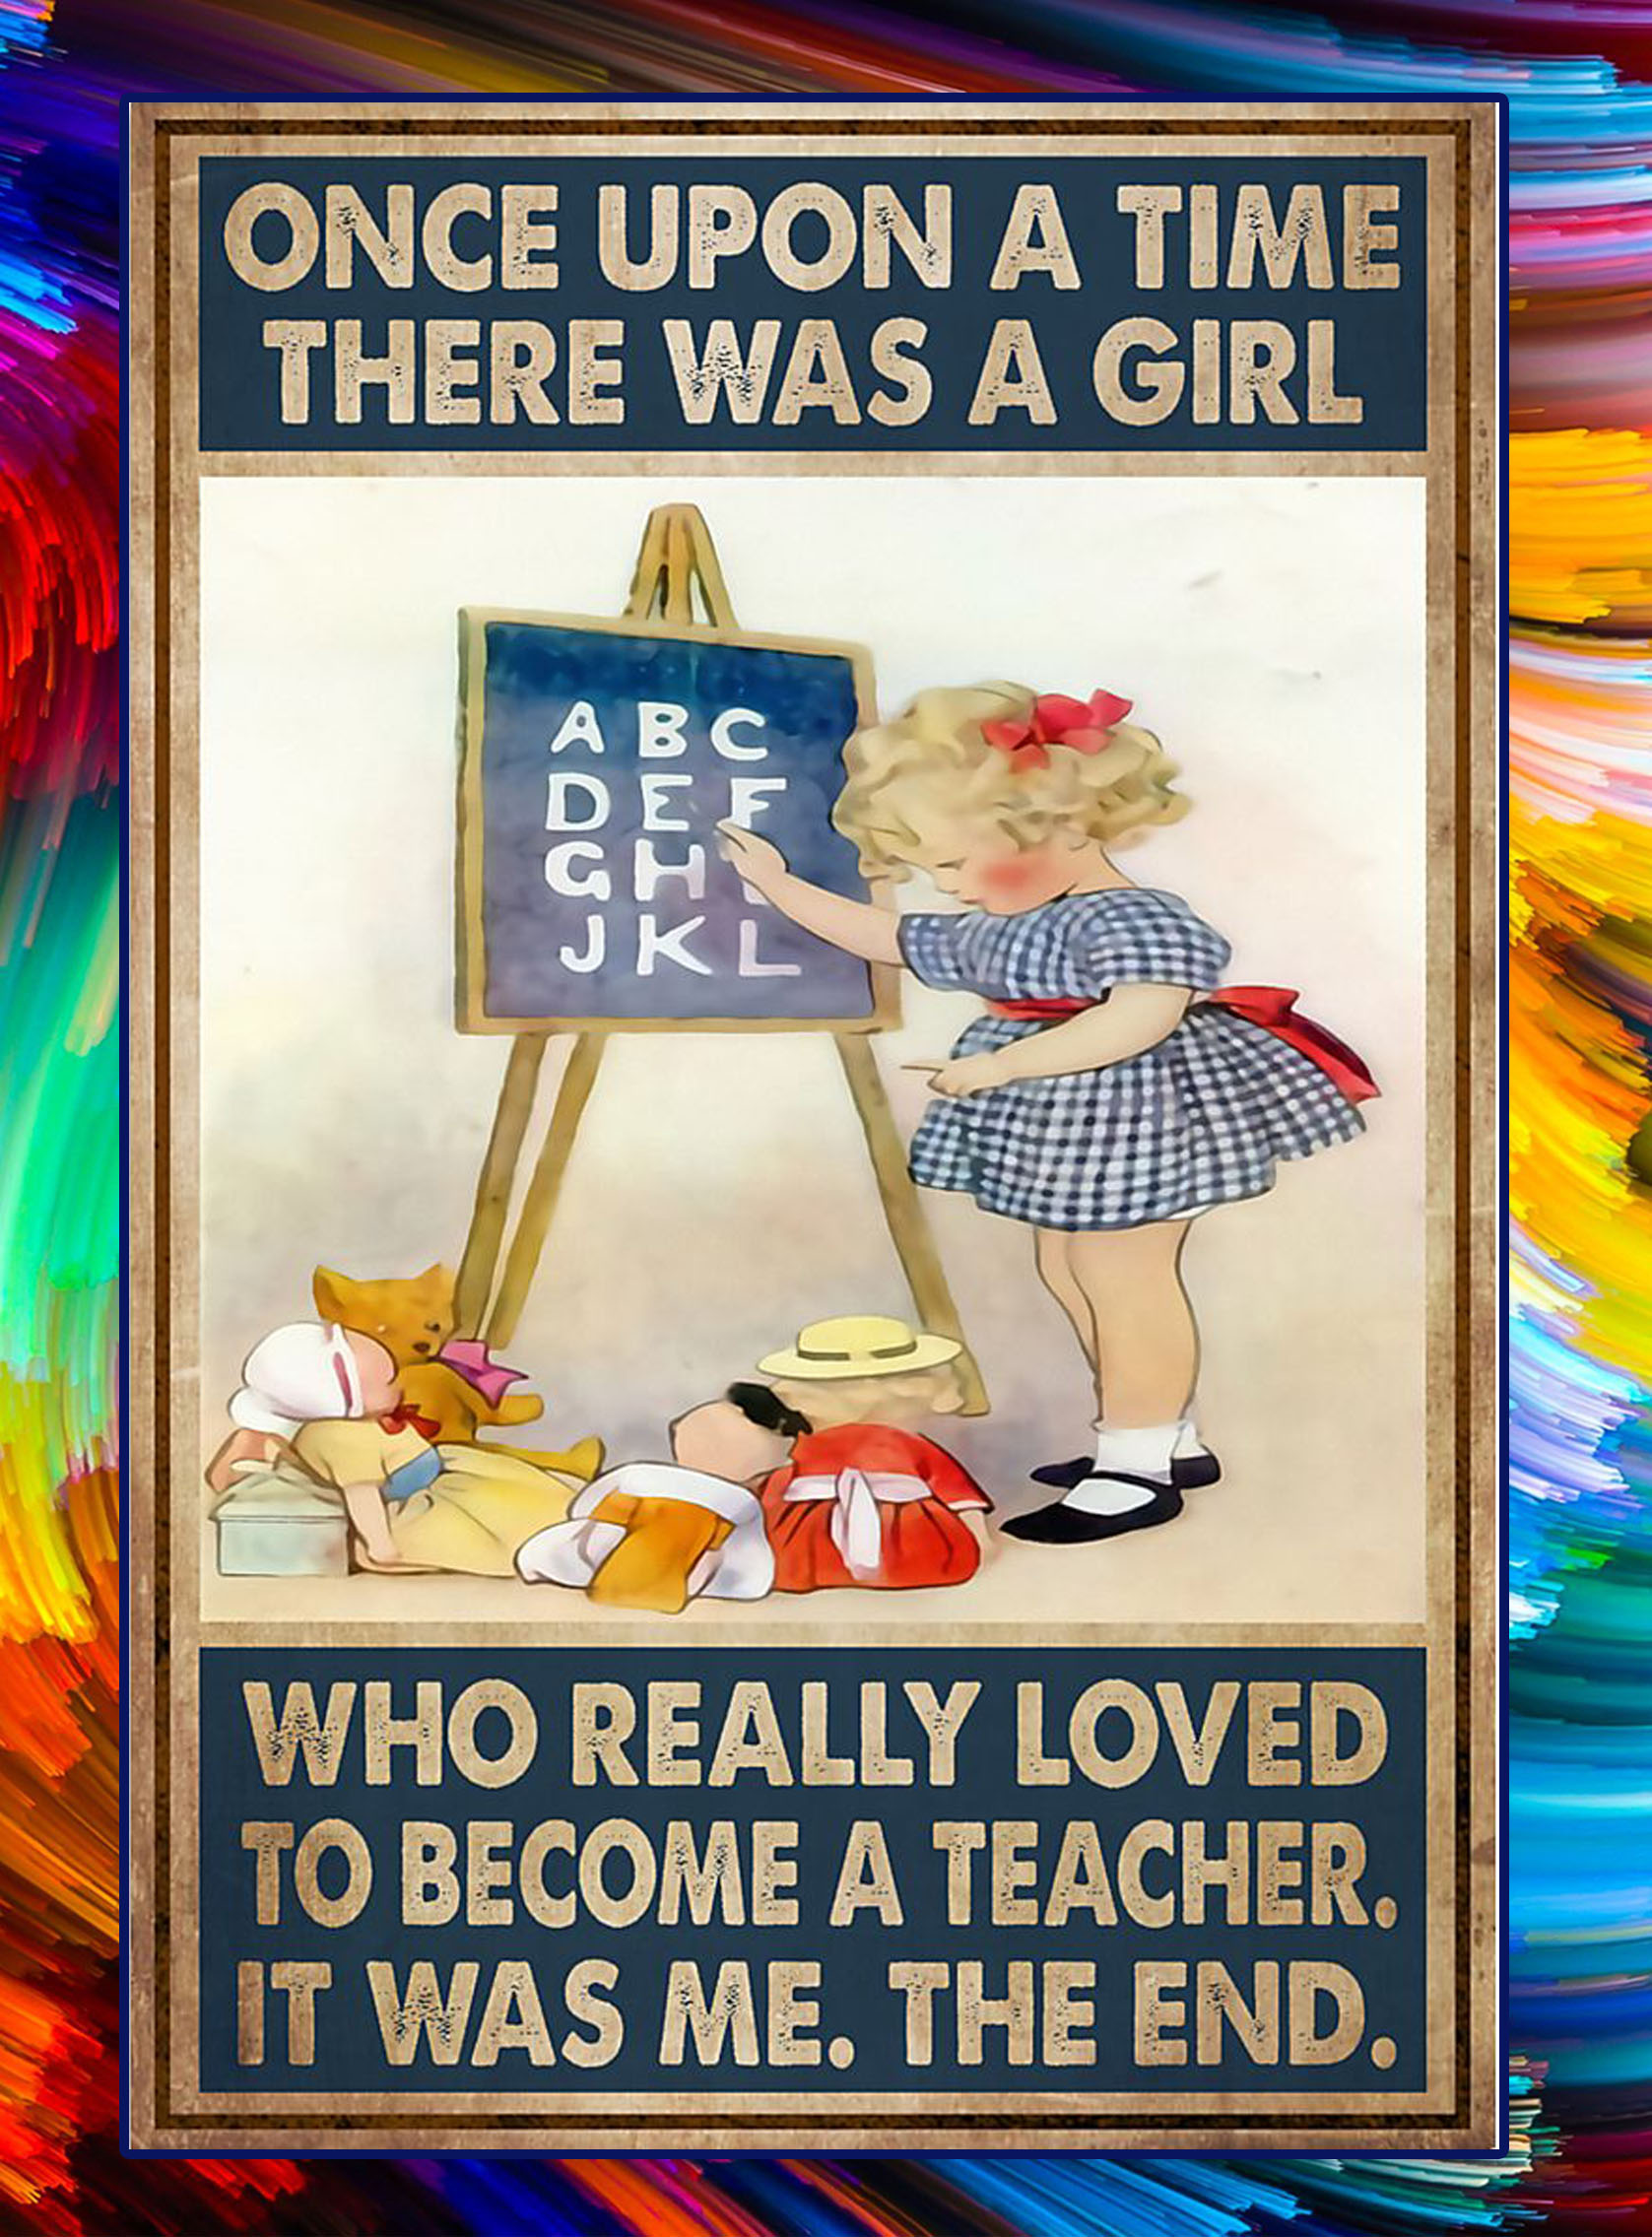 Once upon a time there was a girl who really loved to become a teacher poster